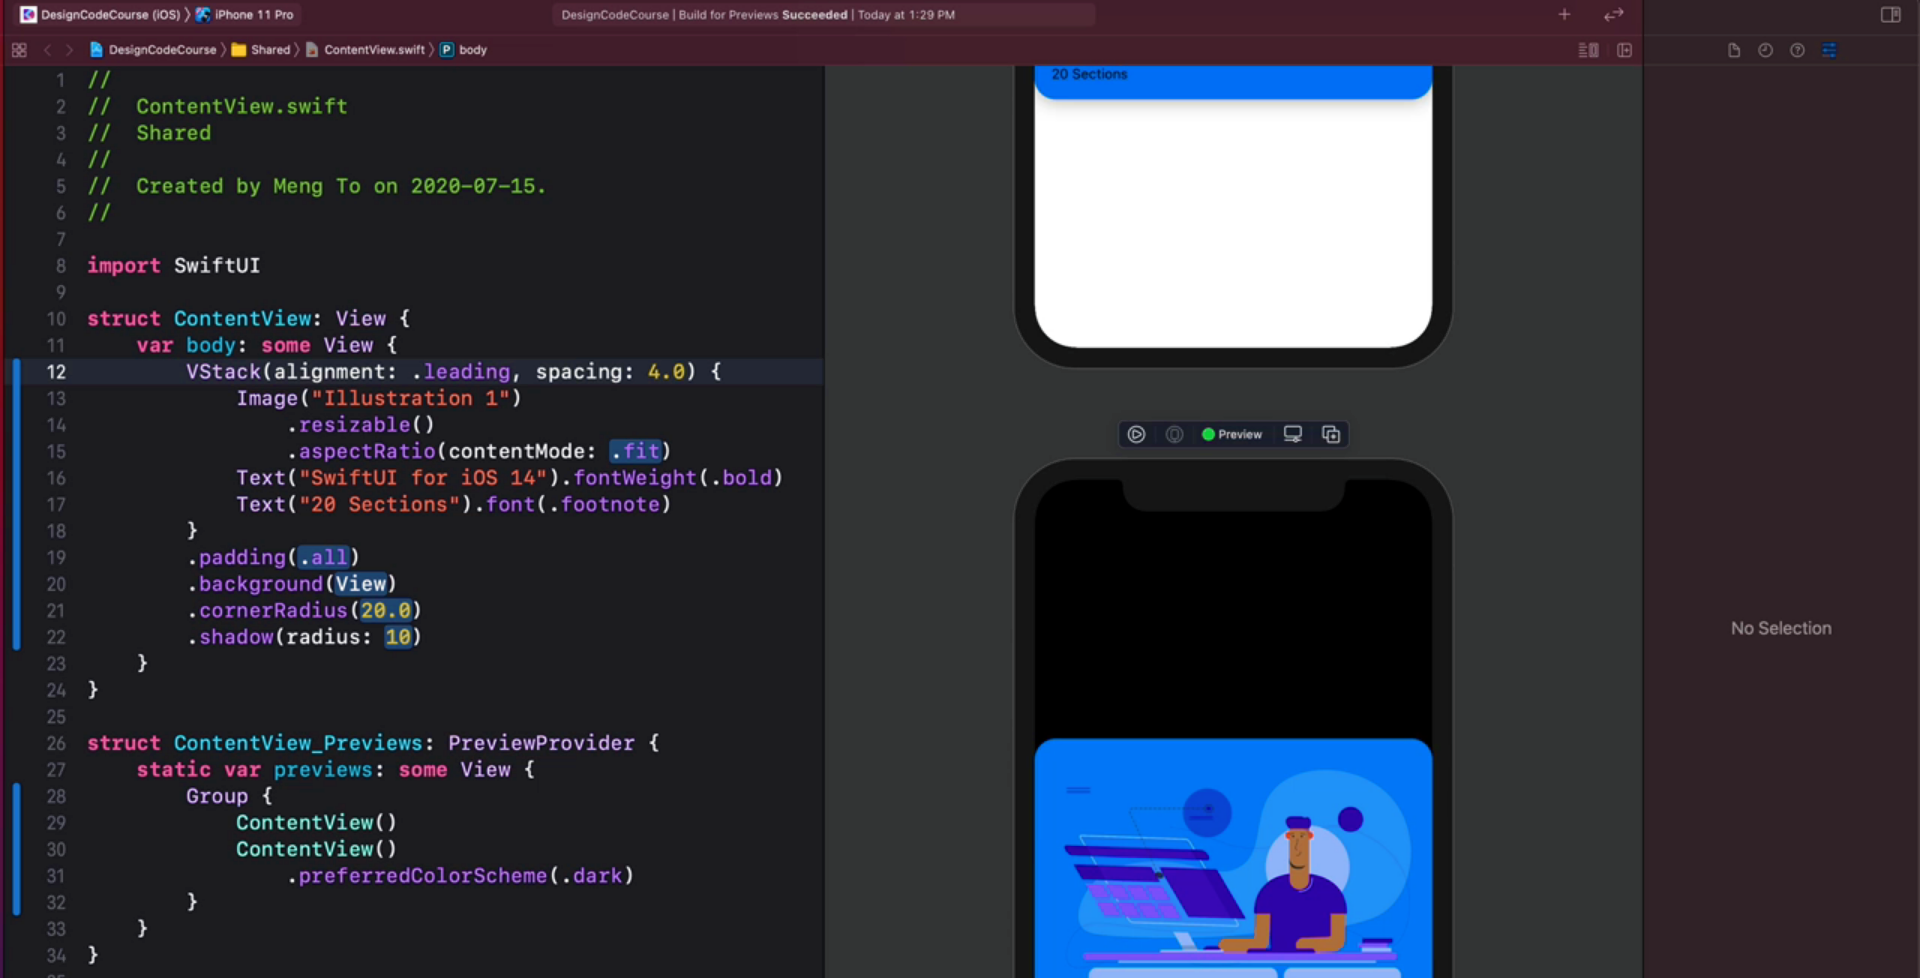 swiftui-section2-8